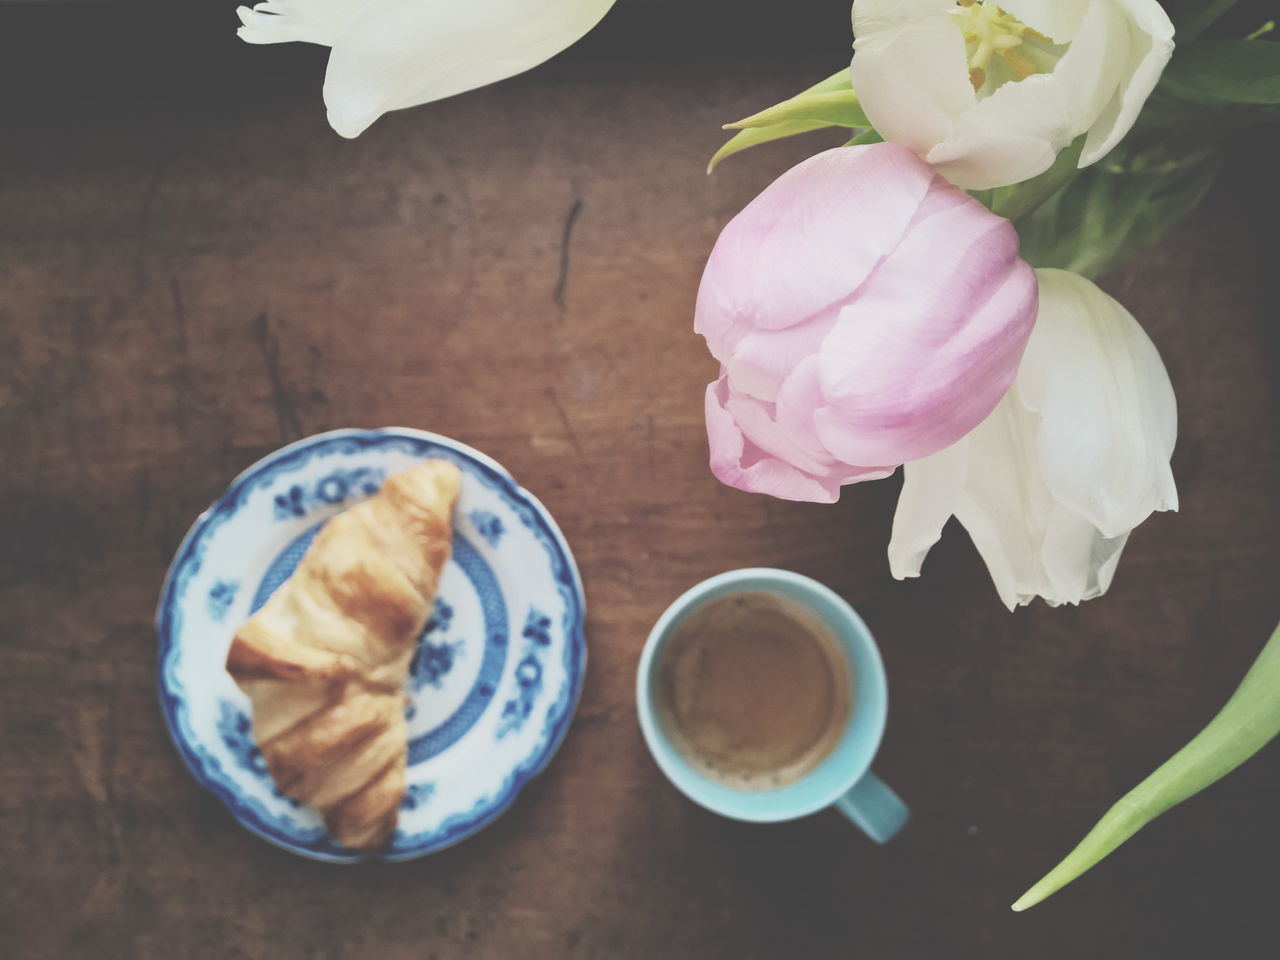 Beautiful stock photos of tulip, Baked Pastry Item, Coffee - Drink, Coffee Cup, Croissant